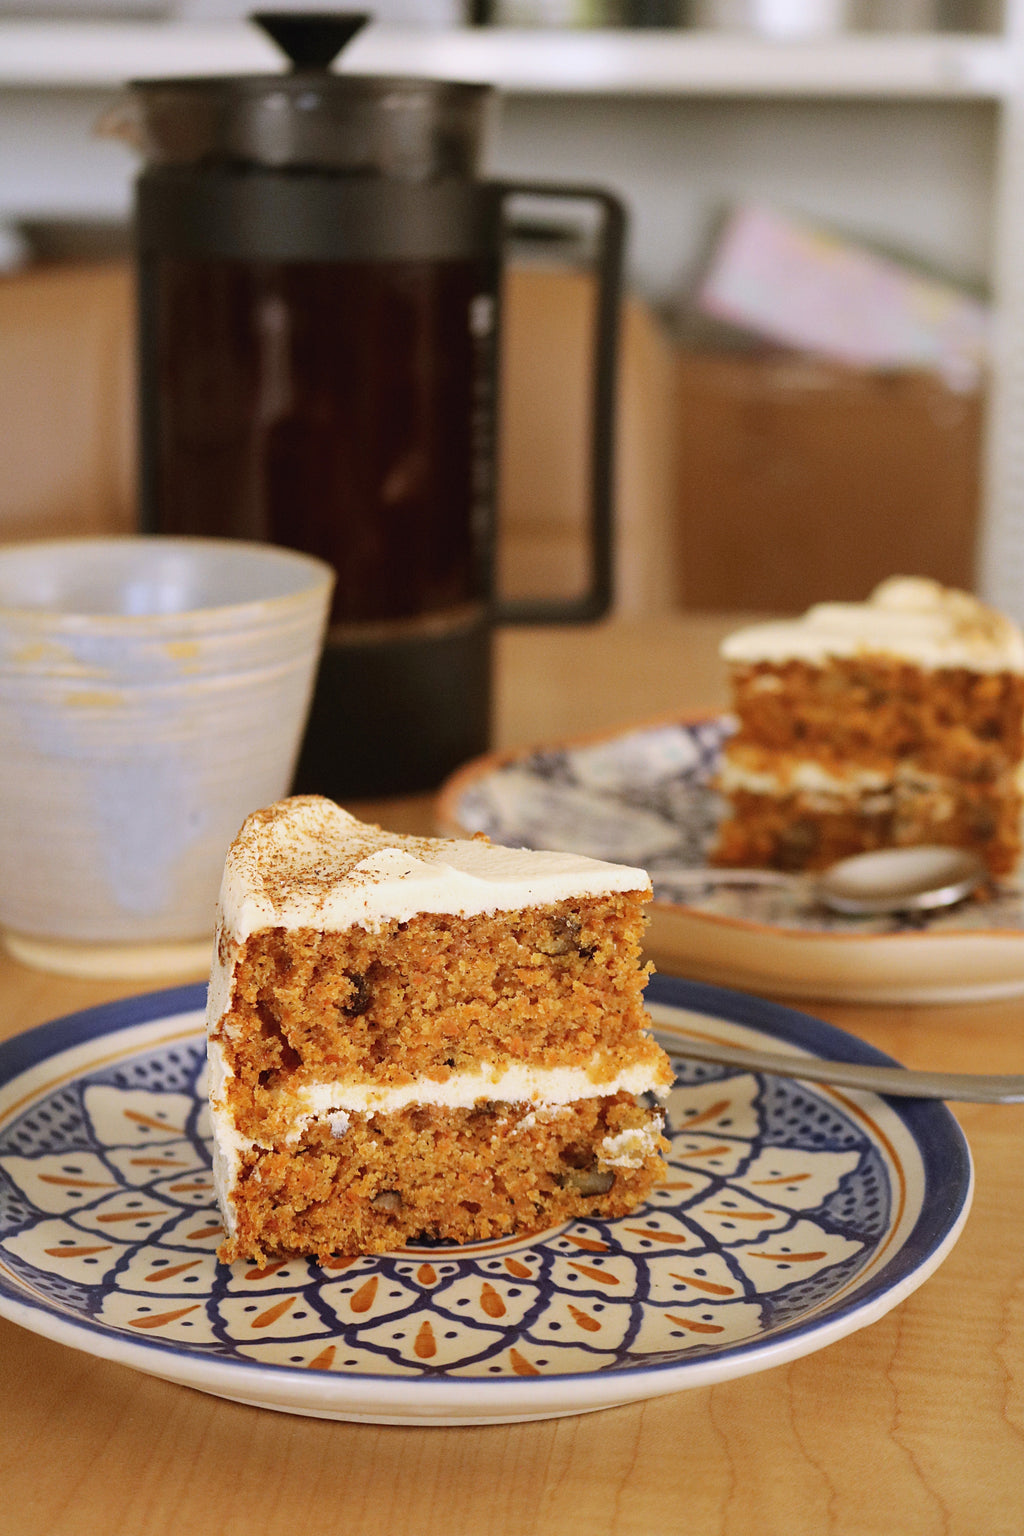 Carrot Walnut Cake with Cream cheese frosting